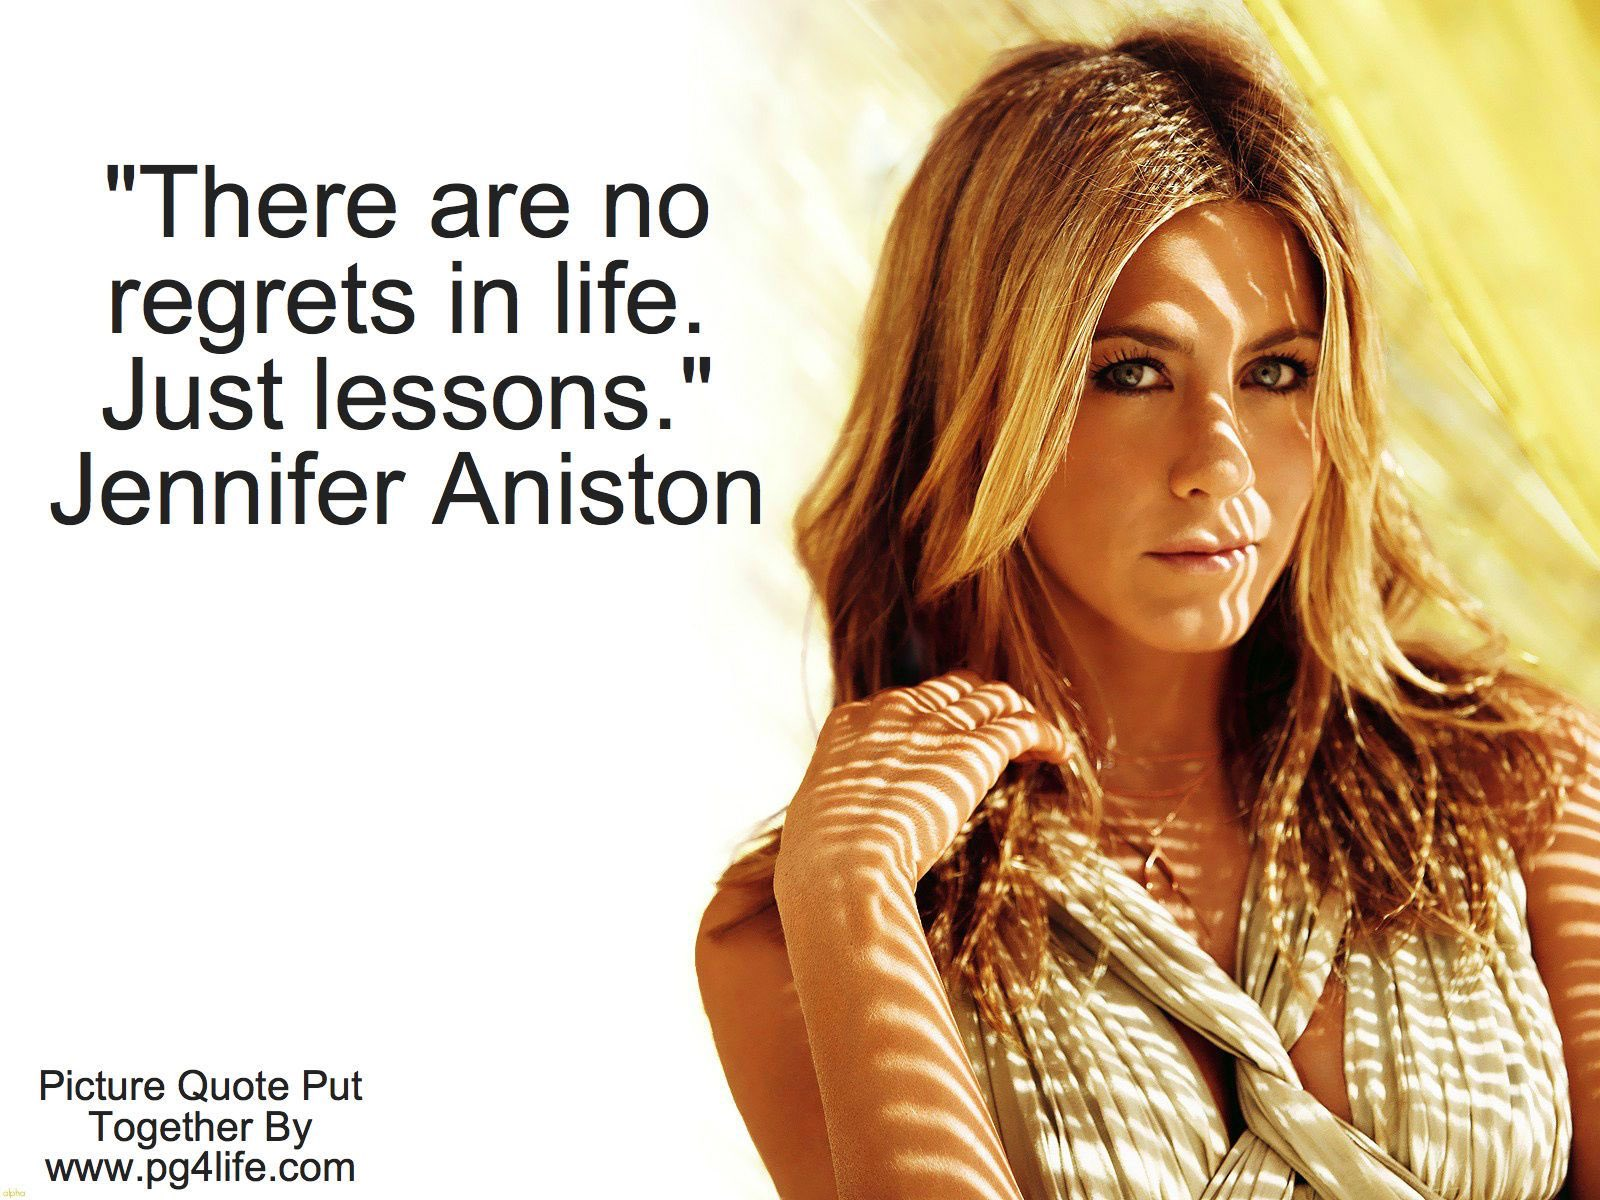 Happy 50th Birthday, Jennifer Aniston!!! Thanks for being such a great role model!!!!